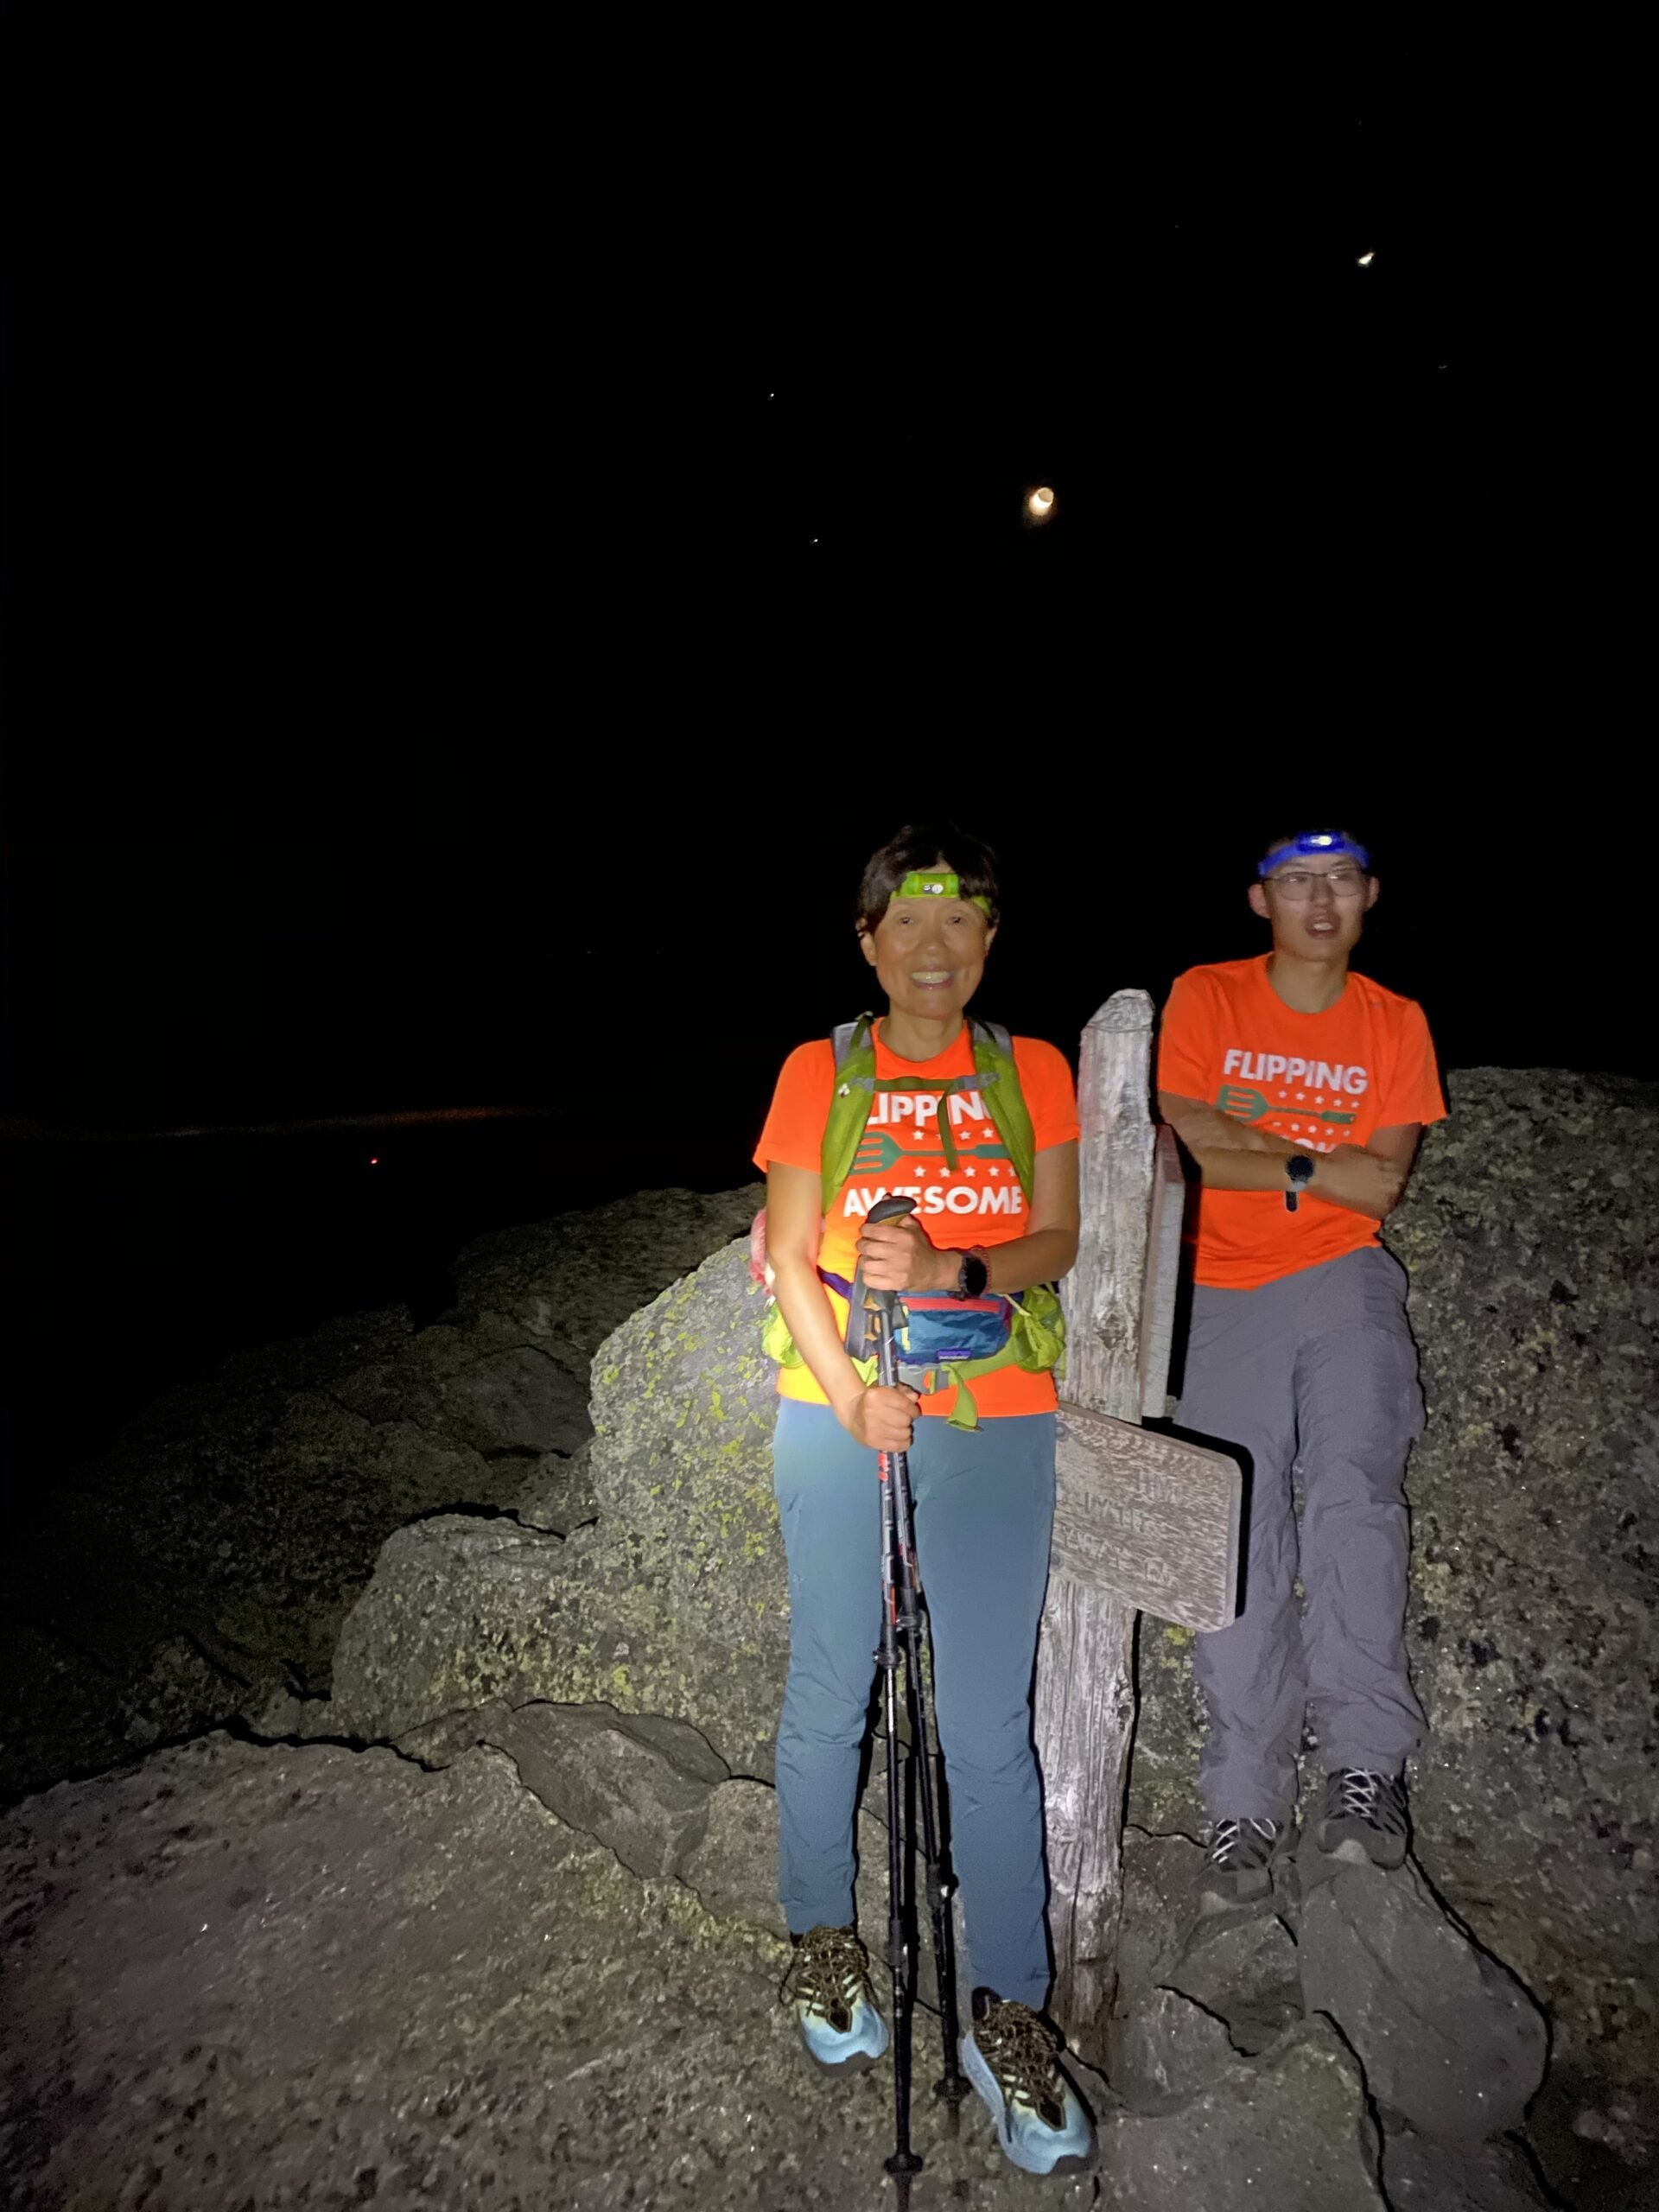 Connie Cao and son Enchee Xu posing at a summit of Mt. Madison in NH. The hike started at 12:30 a.m.